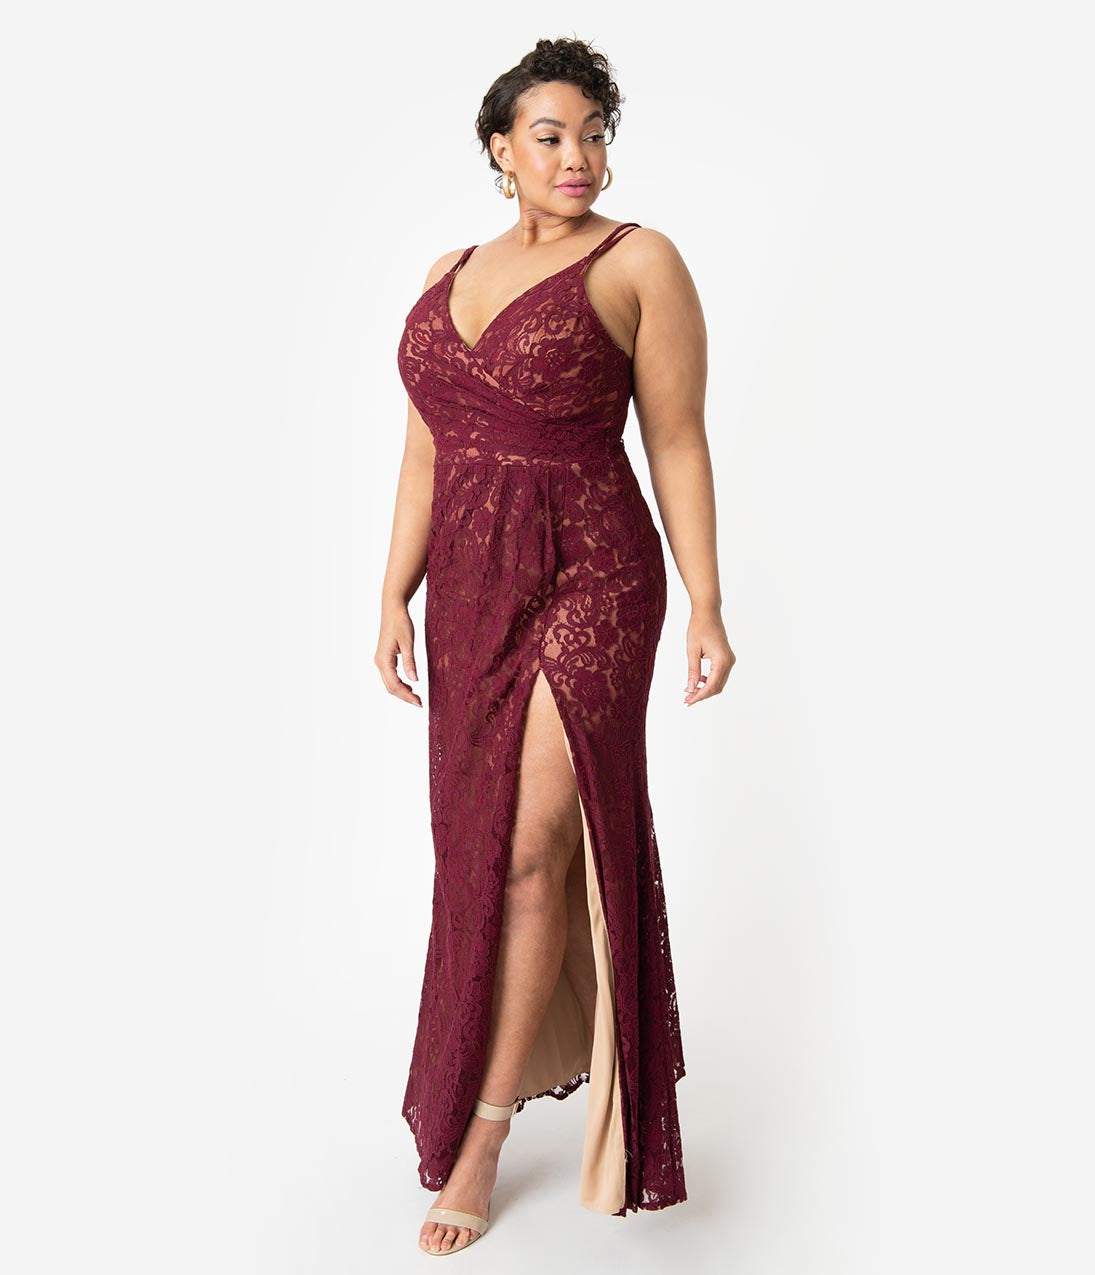 Art Deco Dresses | Art Deco Fashion, Clothing Burgundy Lace Sexy Sleeveless Side Slit Long Dress $130.00 AT vintagedancer.com